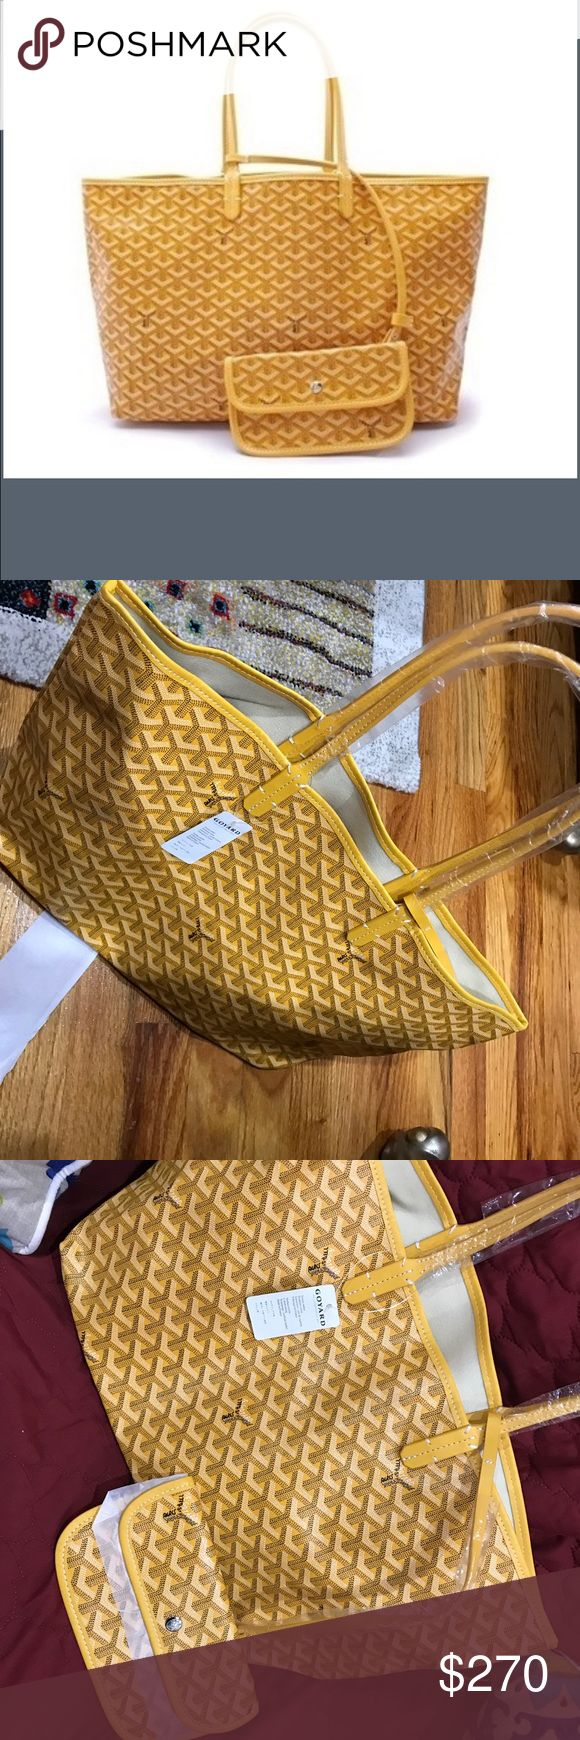 Goyard Paris tote w wallet Brand new goyard Paris tote with wallet. Price reflects authenticity. Comes with goyard dustbag Goyard Bags Totes